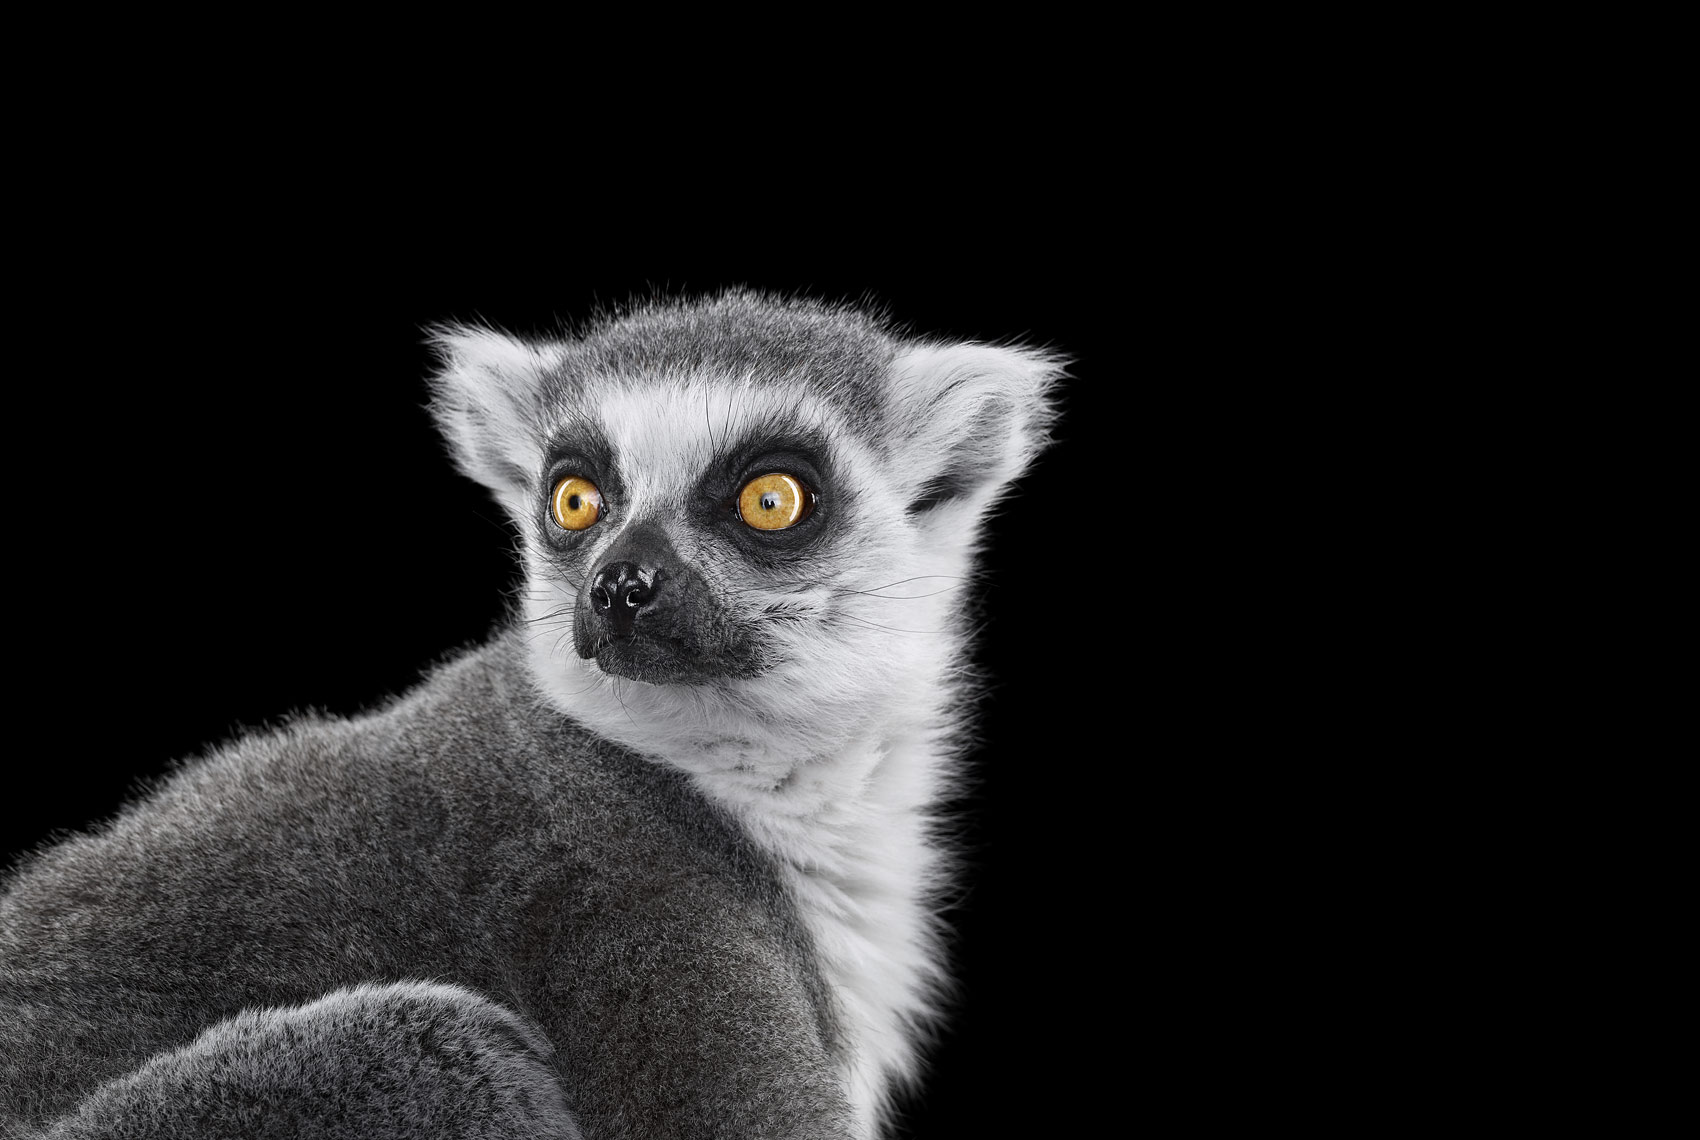 Ring-tailed lemur studio portrait by wildlife photographer Brad Wilson